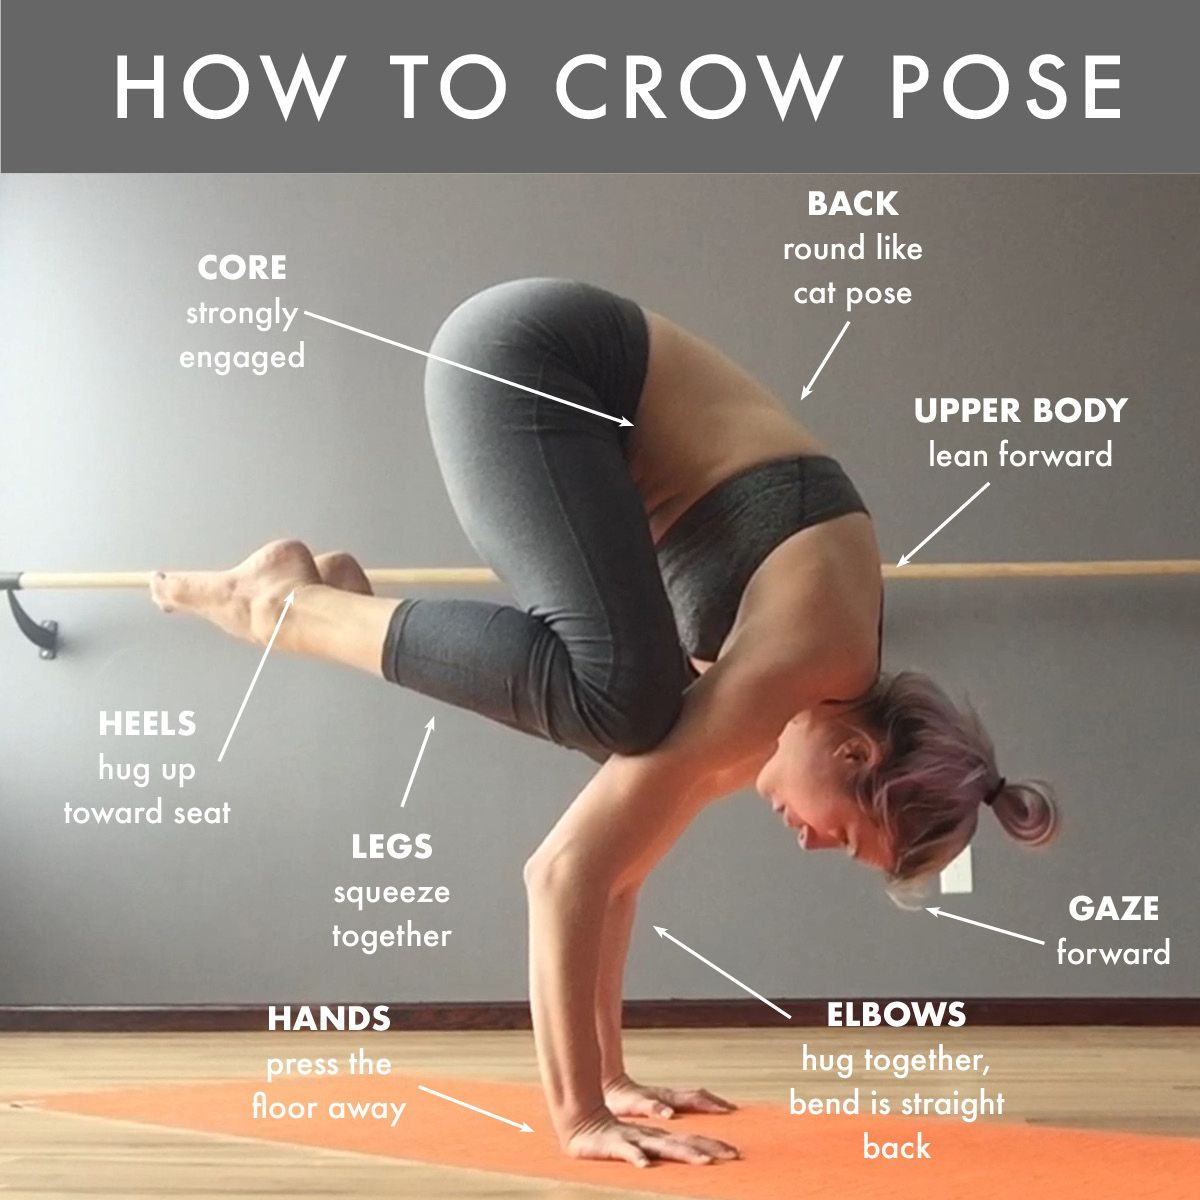 How to Crow Pose   Crow pose, Poses, Yoga positions